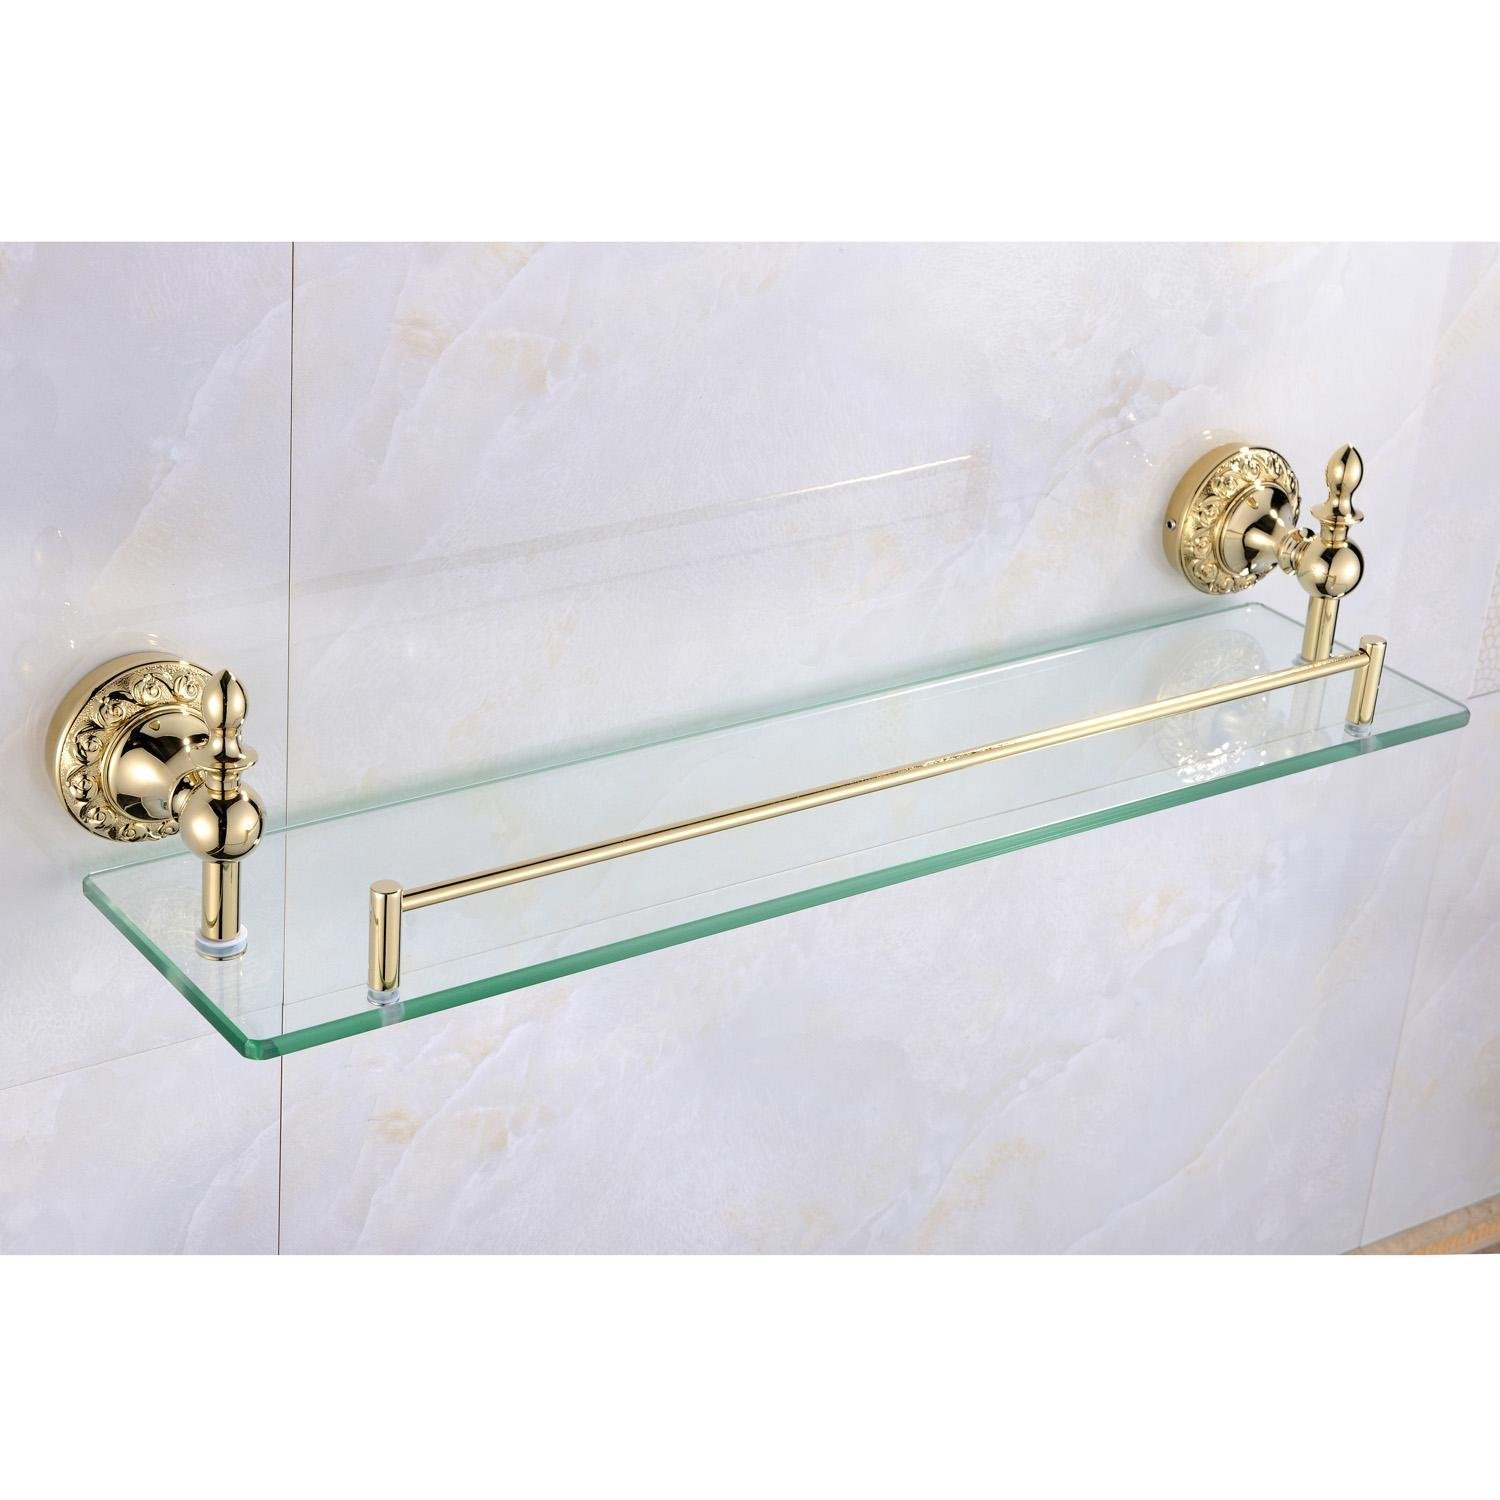 Sprinkle Wall Mount Bathroom Bath Shower Rack Antique Inspired Ti-PVD Finish Solid Brass Material Glass Shelf Lavatory Accessories Tools and Home Improvement Bthroom Towel Holder Shampoo Basket Bars